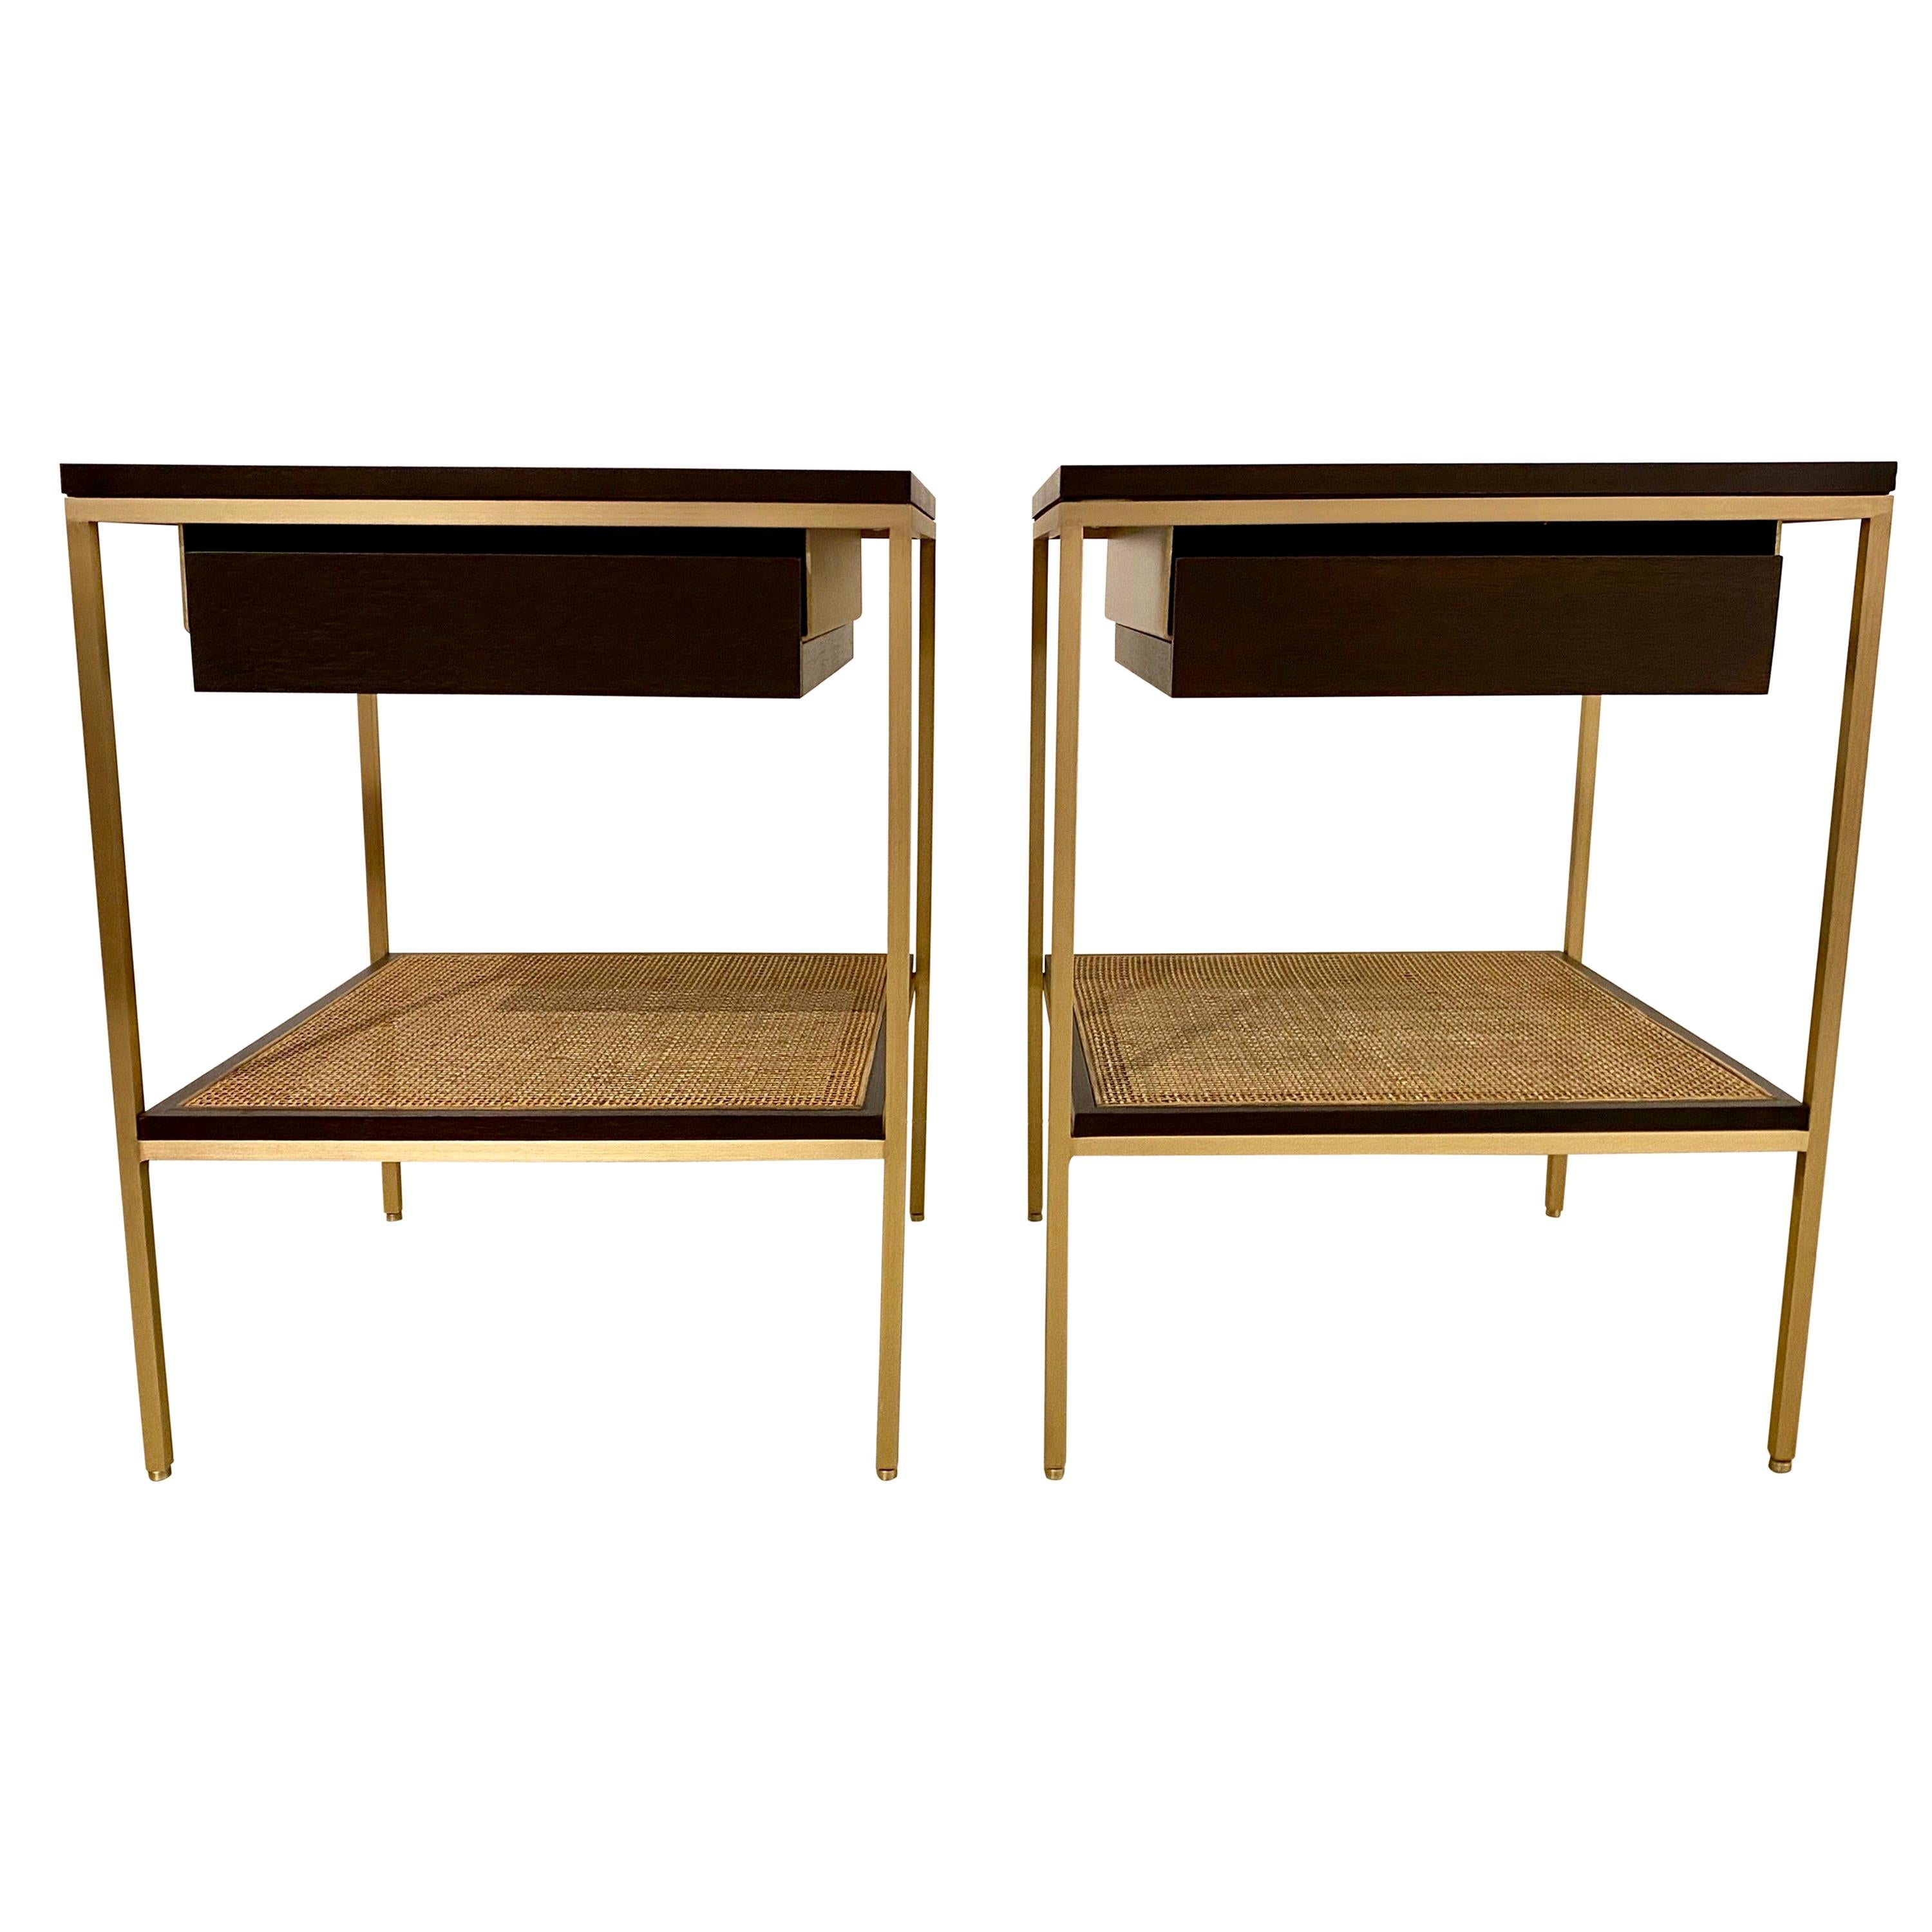 Re 392 Bedside Tables in Dark Walnut